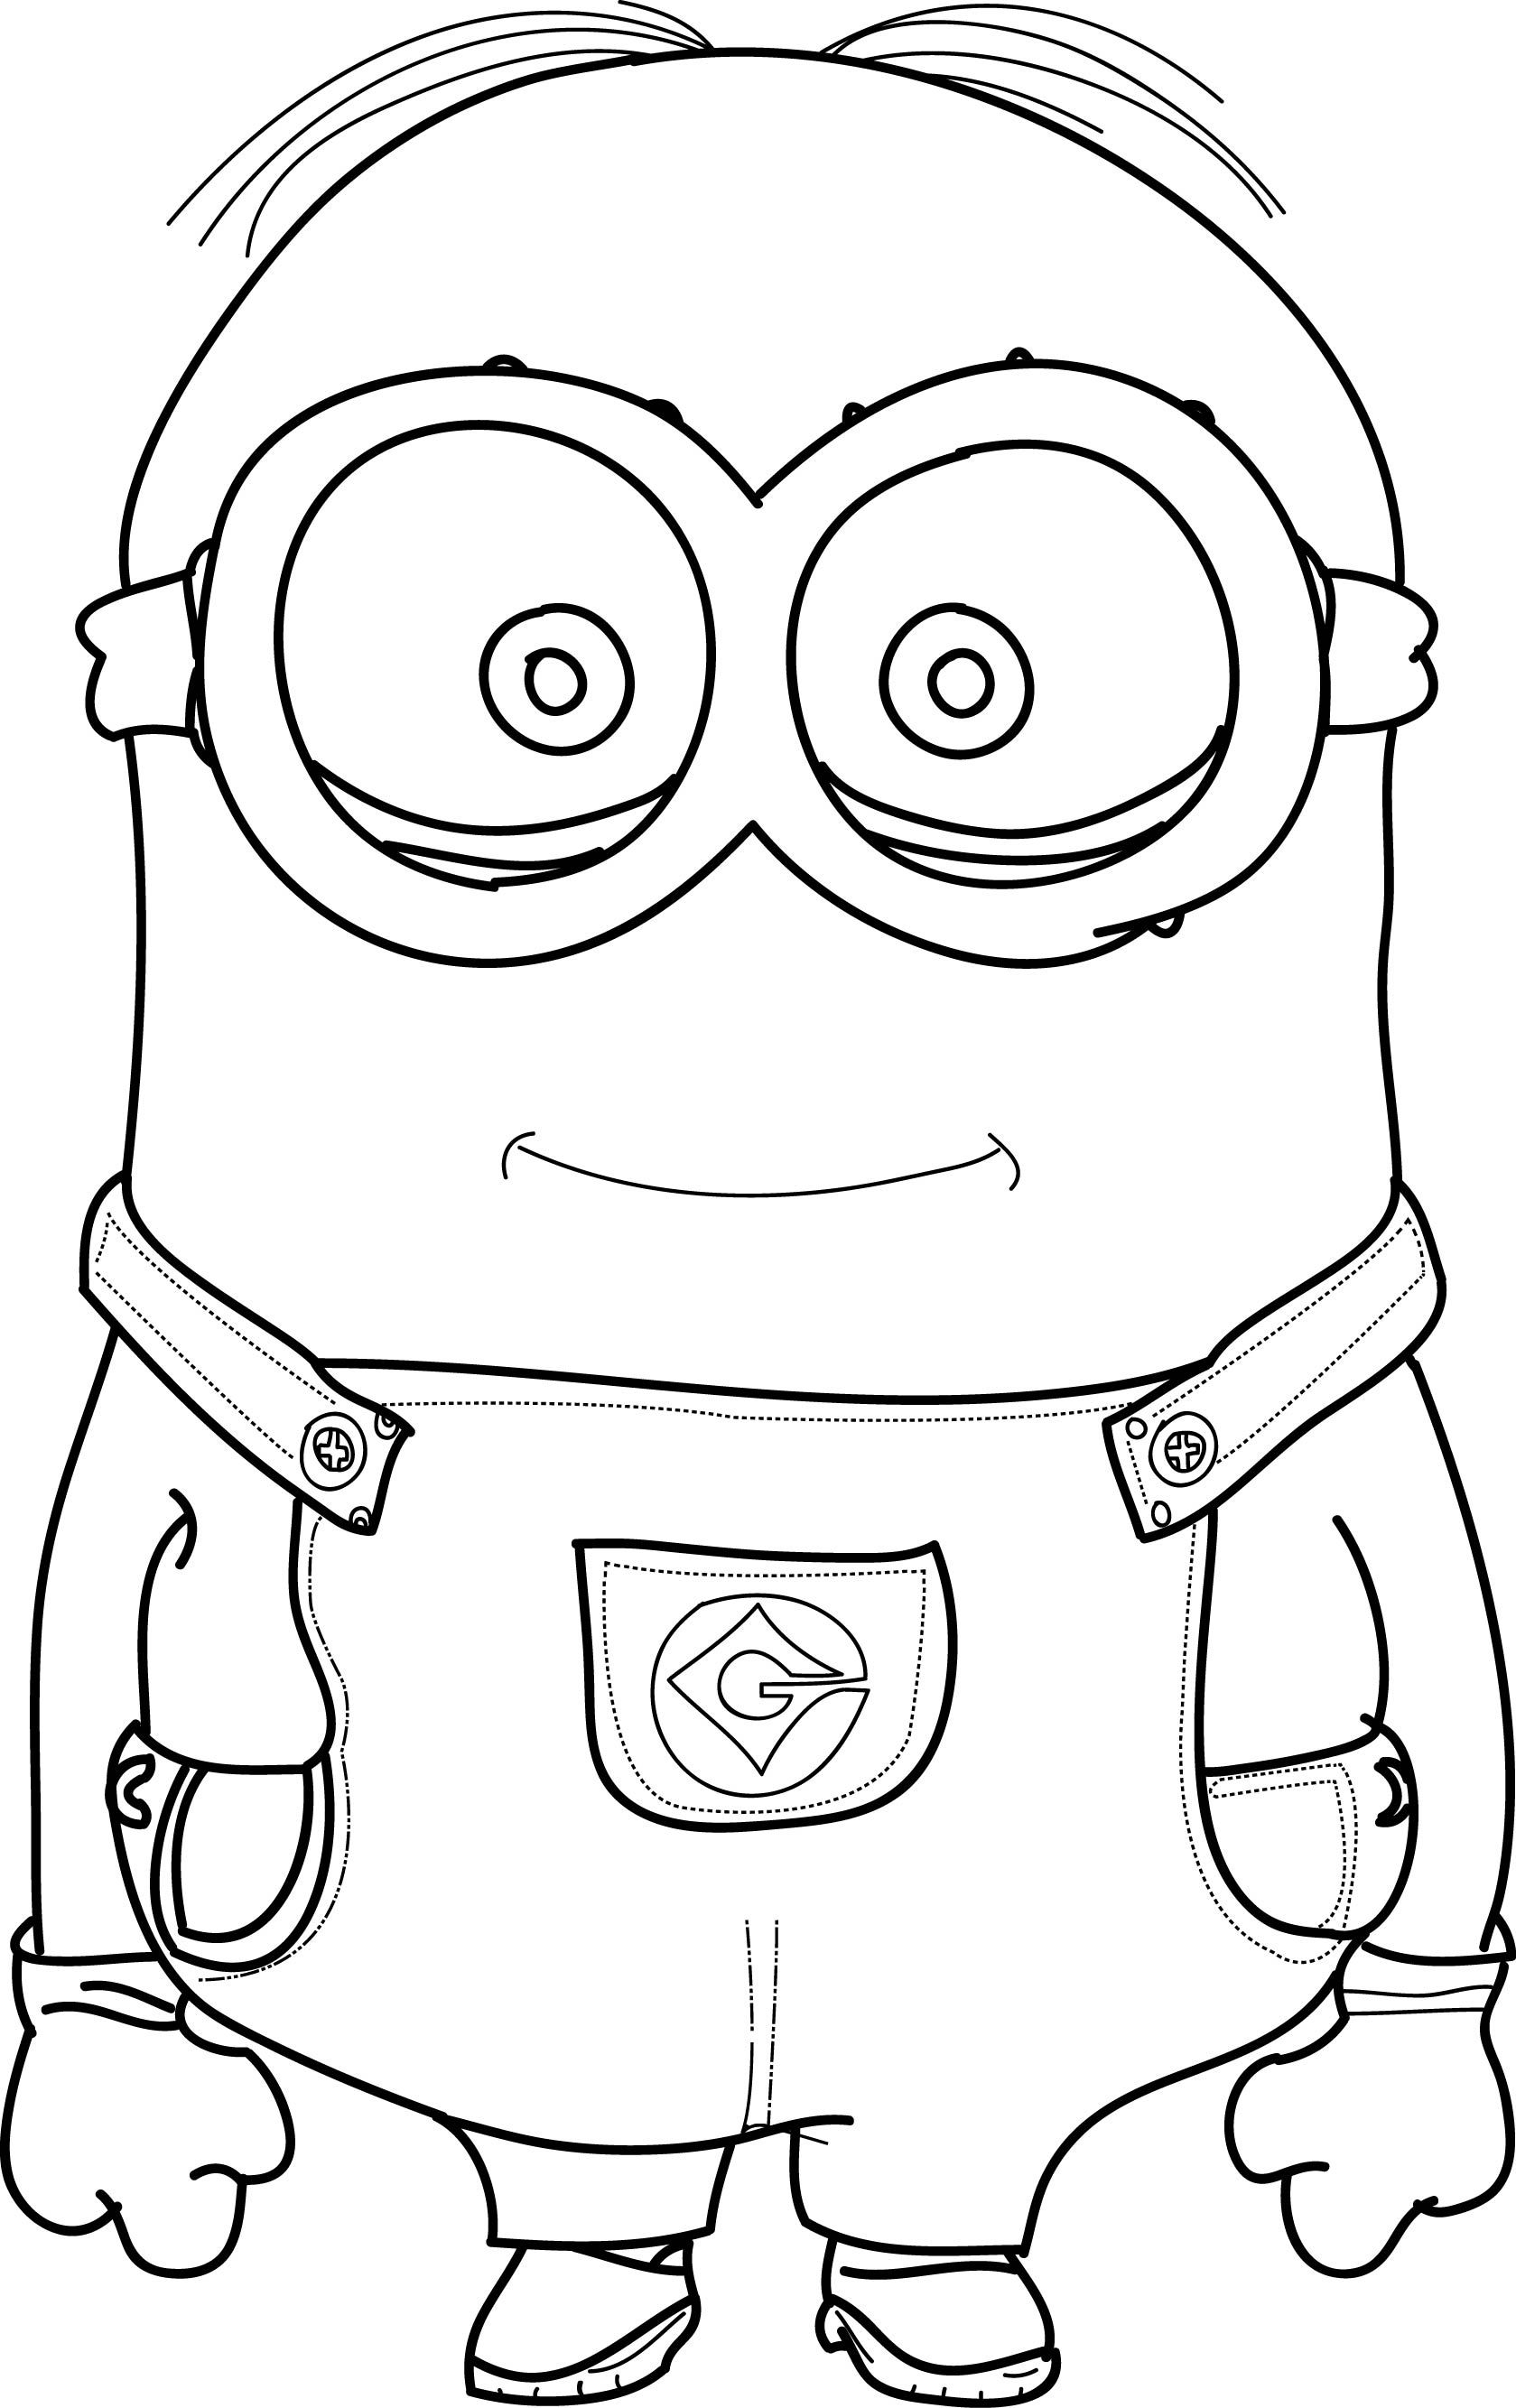 Cool minions coloring pages wecoloringpage pinterest for Coloring pages cool